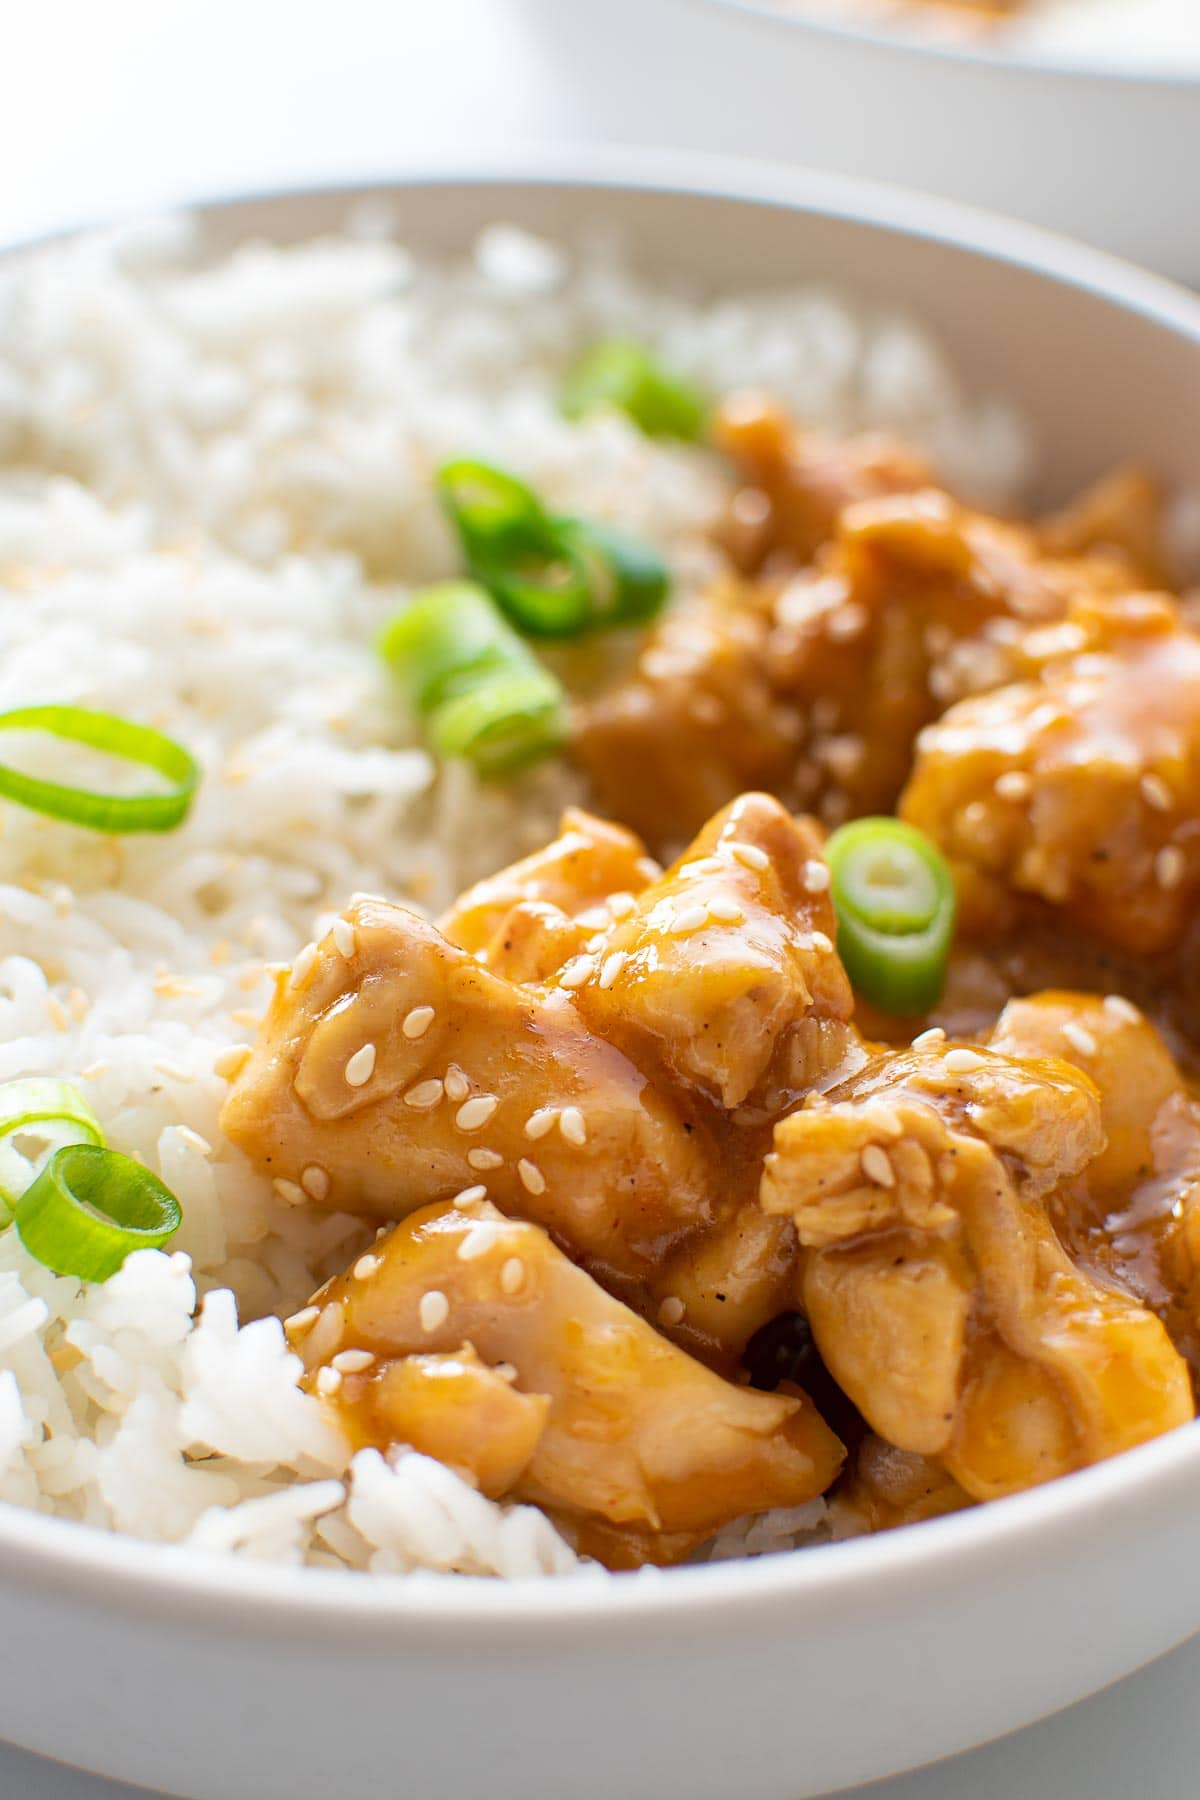 Sticky Instant Pot orange chicken with rice.